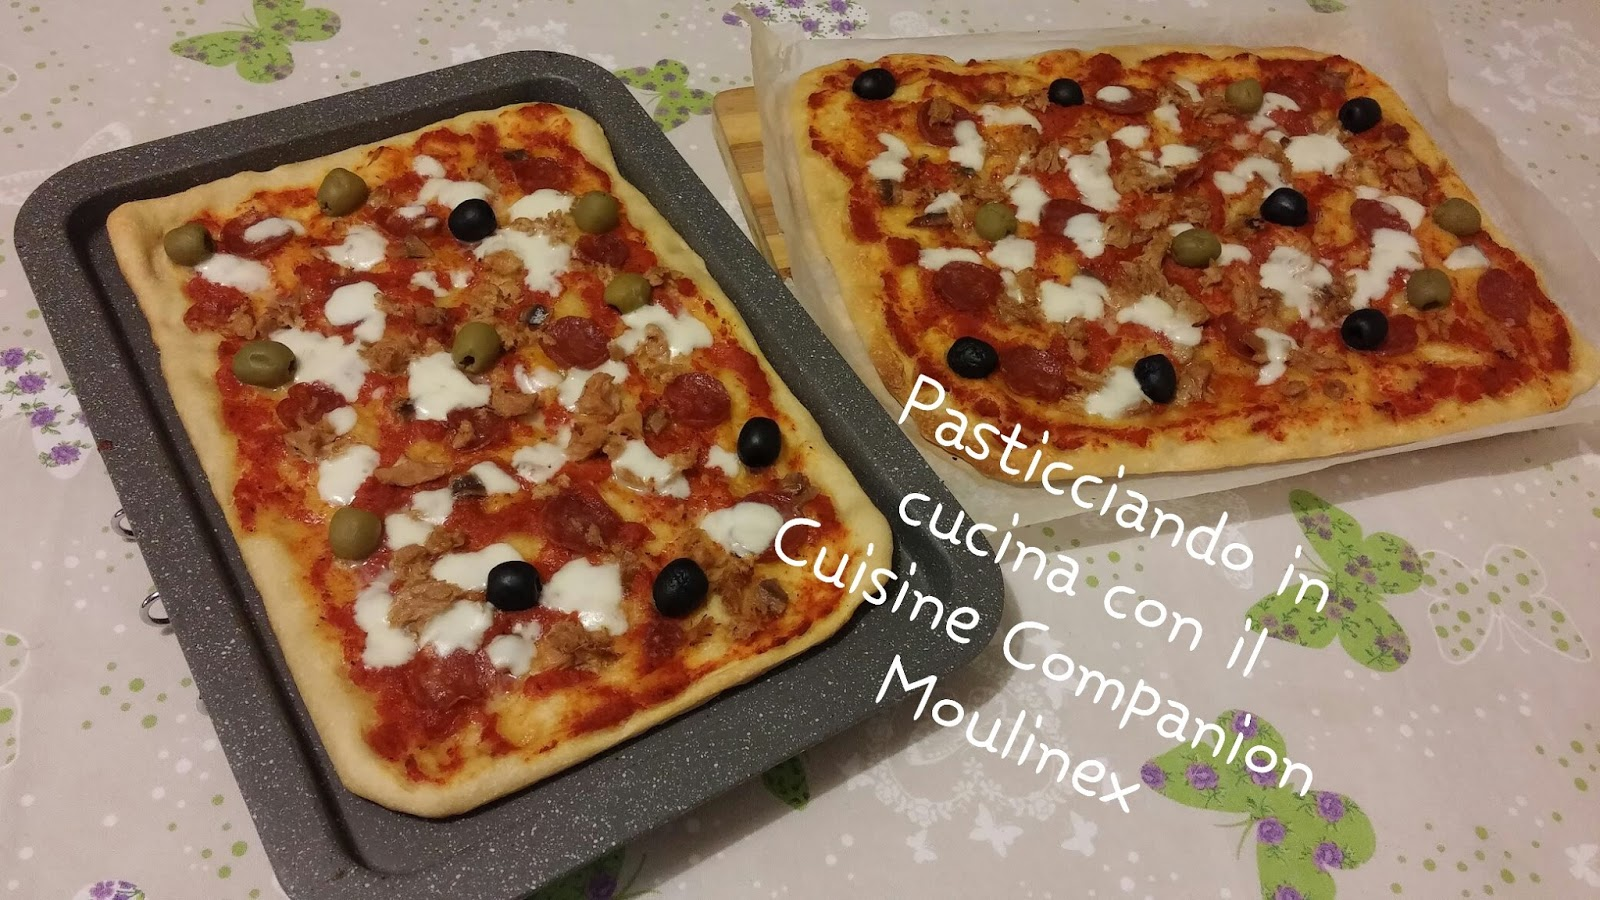 pasticciando in cucina con il cuisine companion moulinex pizza di letizia con il cuisine companion. Black Bedroom Furniture Sets. Home Design Ideas